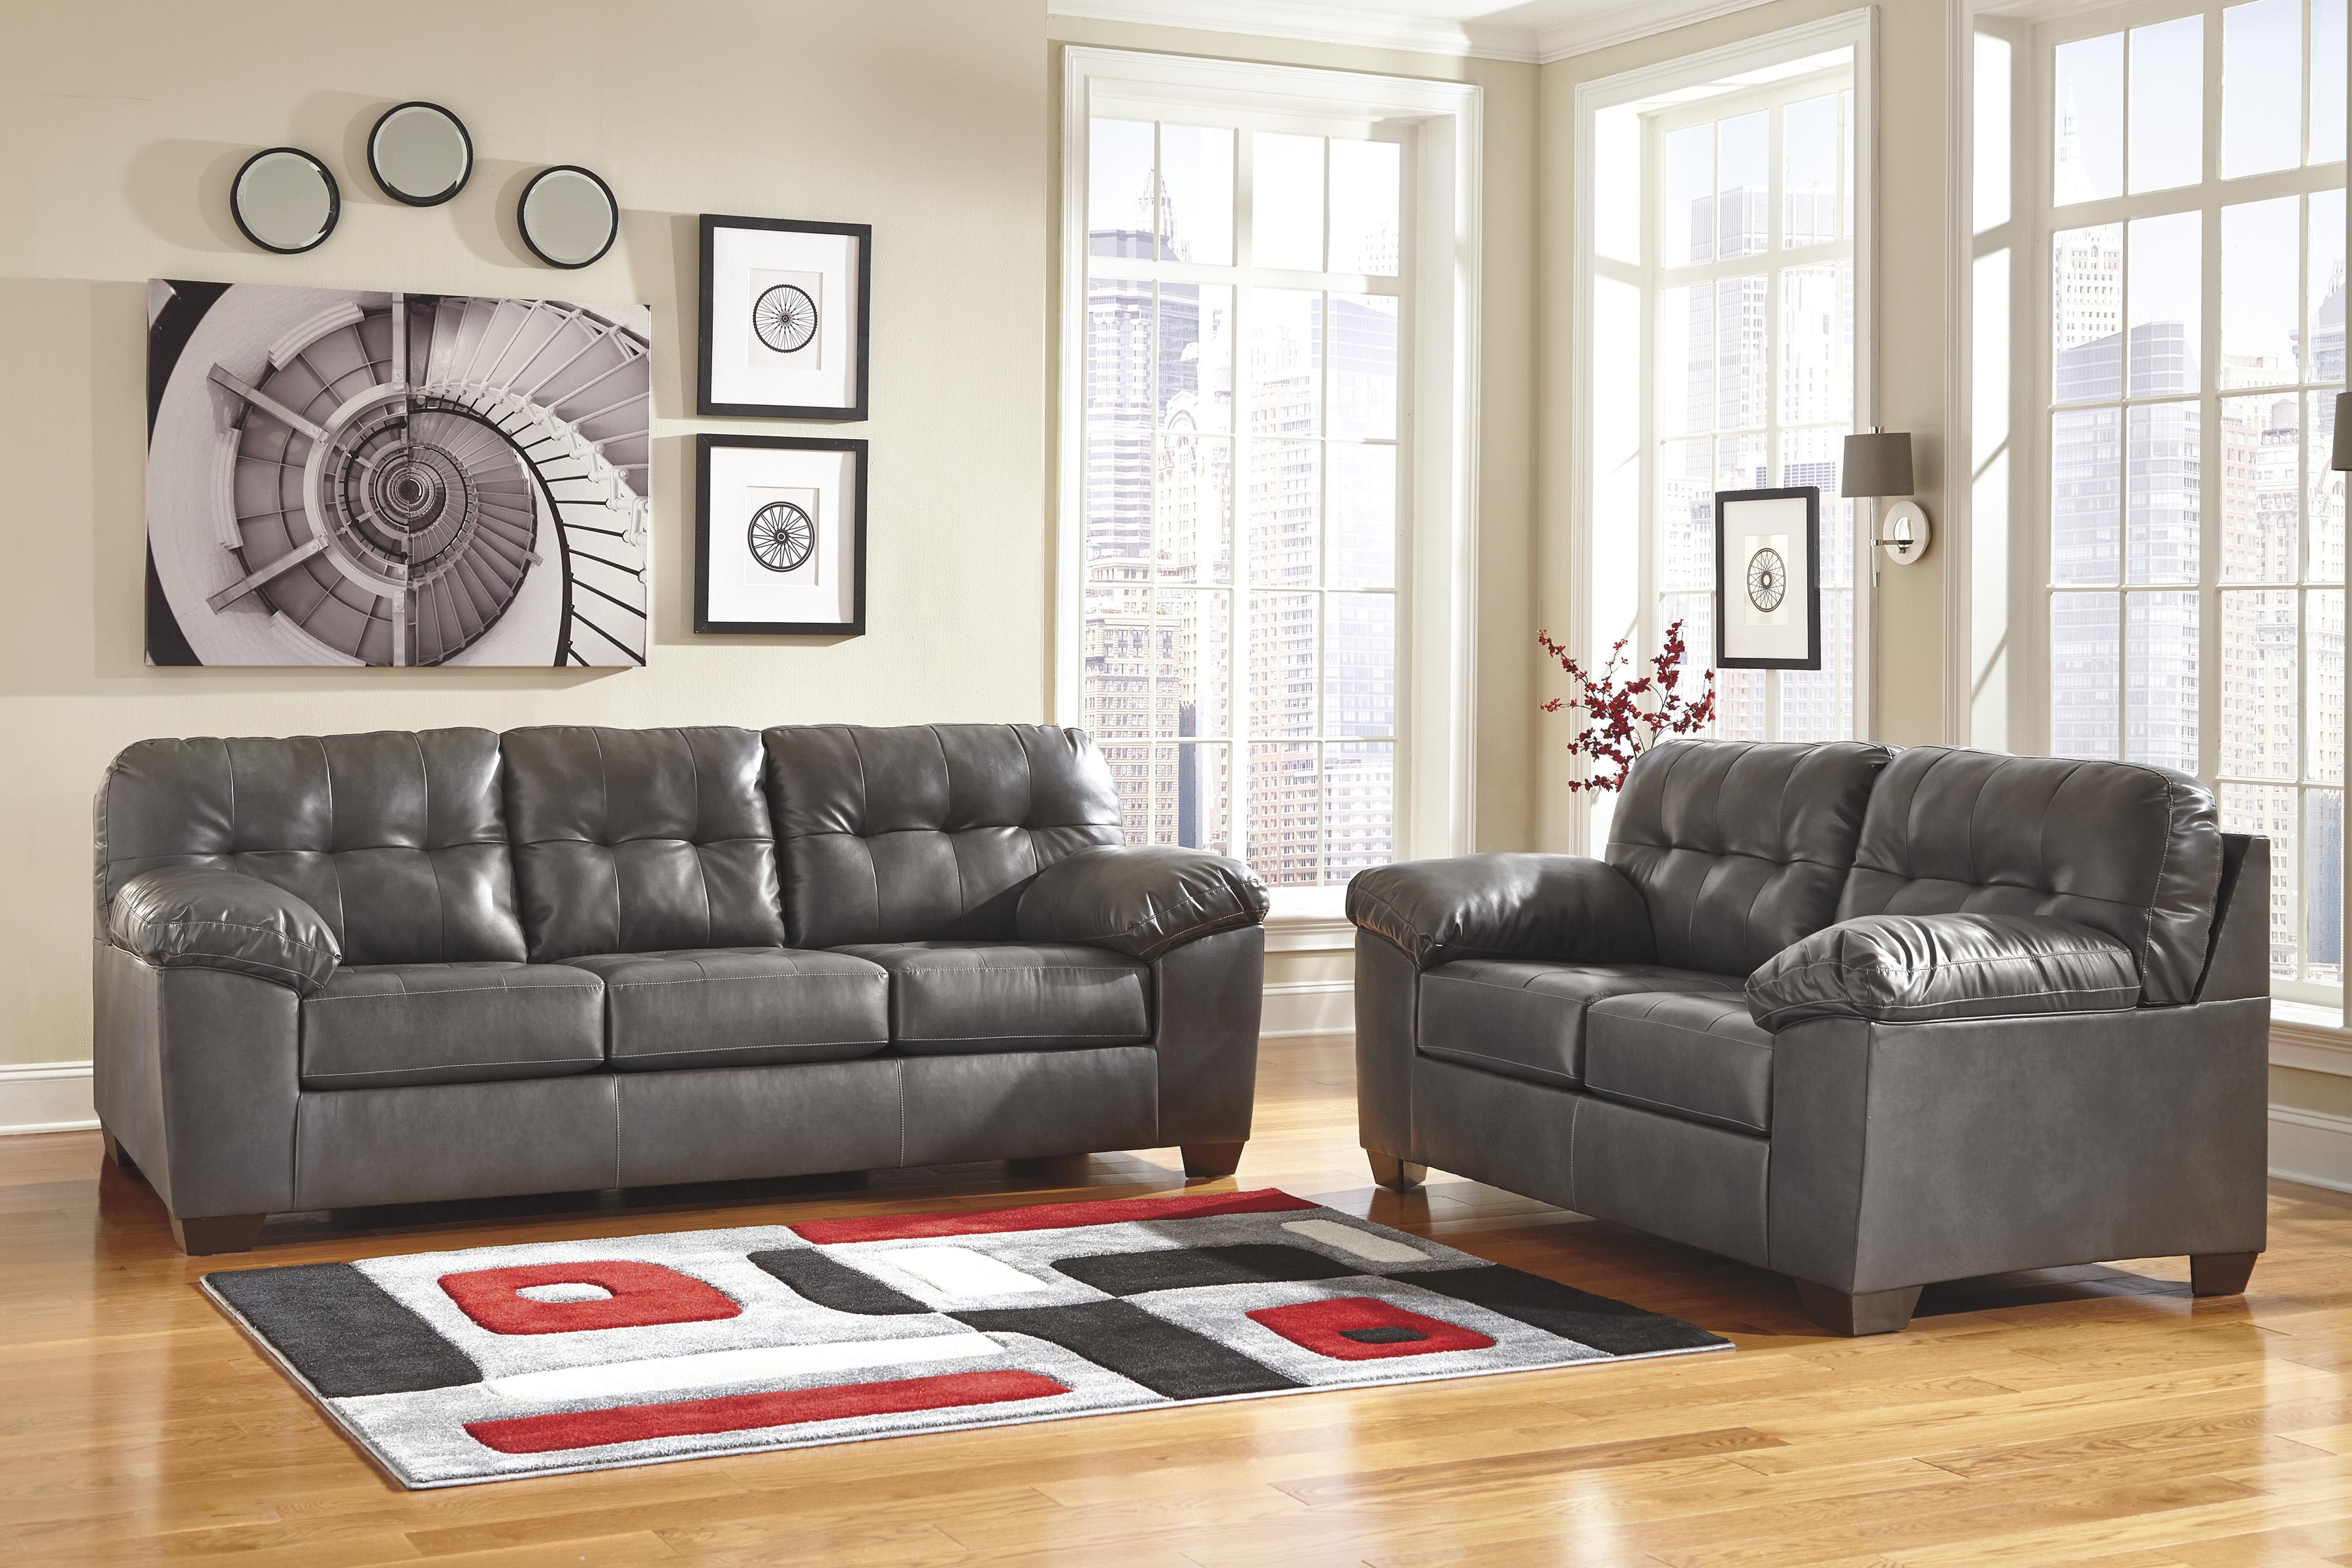 Signature Design By Ashley Alliston Durablend Gray Sectional W Right Chaise Tufting Michael S Furniture Warehouse Sofa